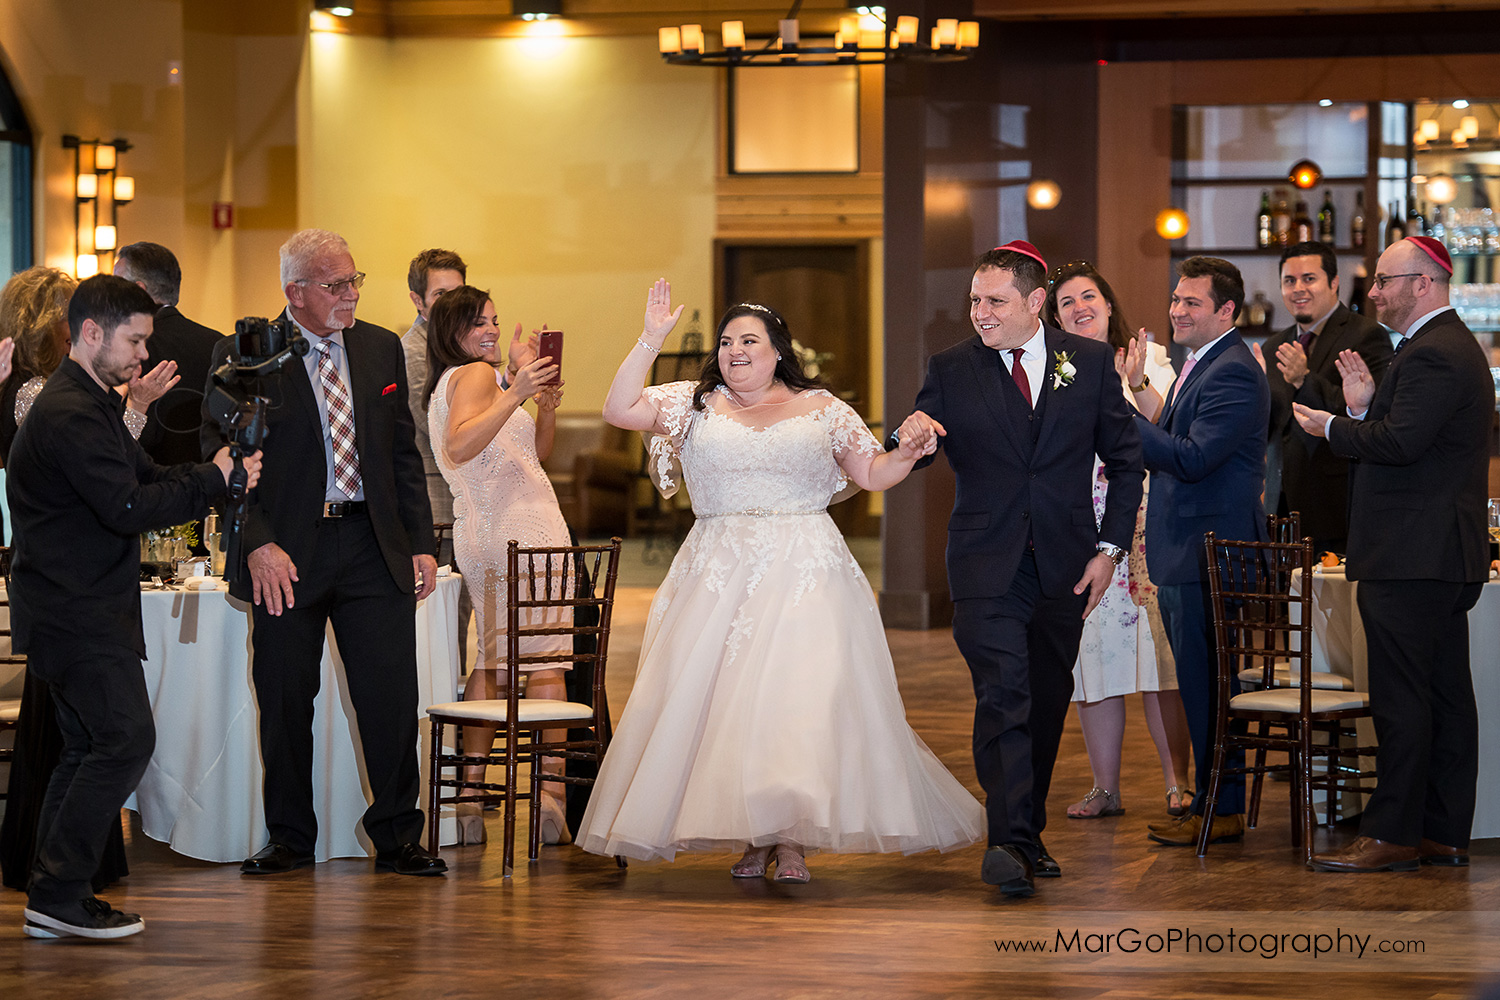 bride and groom grand entrance to wedding reception at Livermore Garre Vineyard and Winery